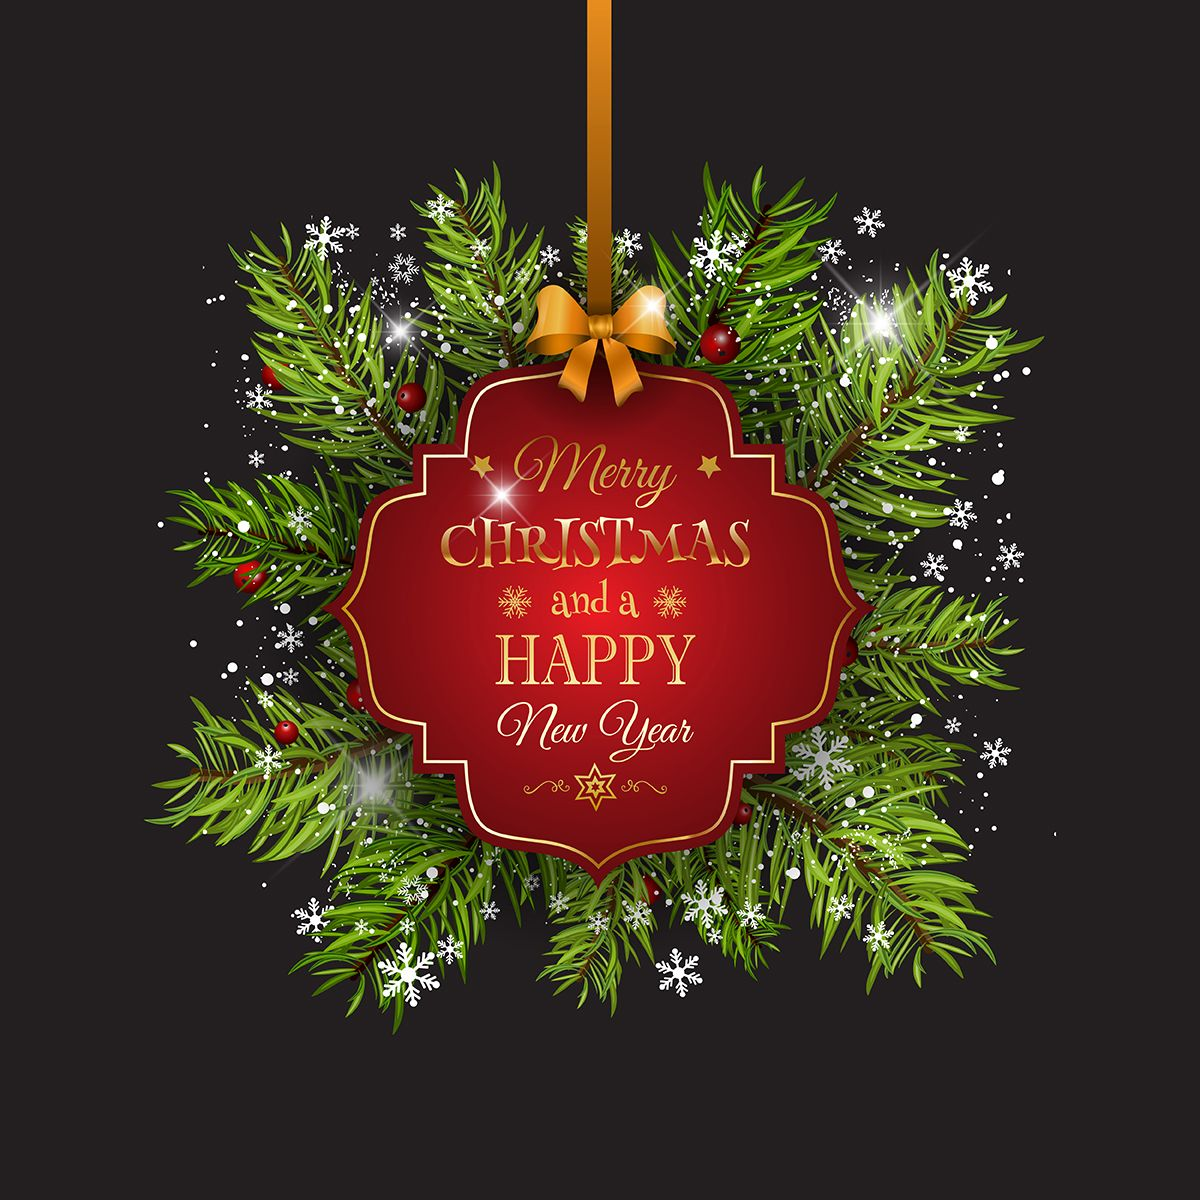 Merry Christmas And Happy New Year 2018 Merry Christmas